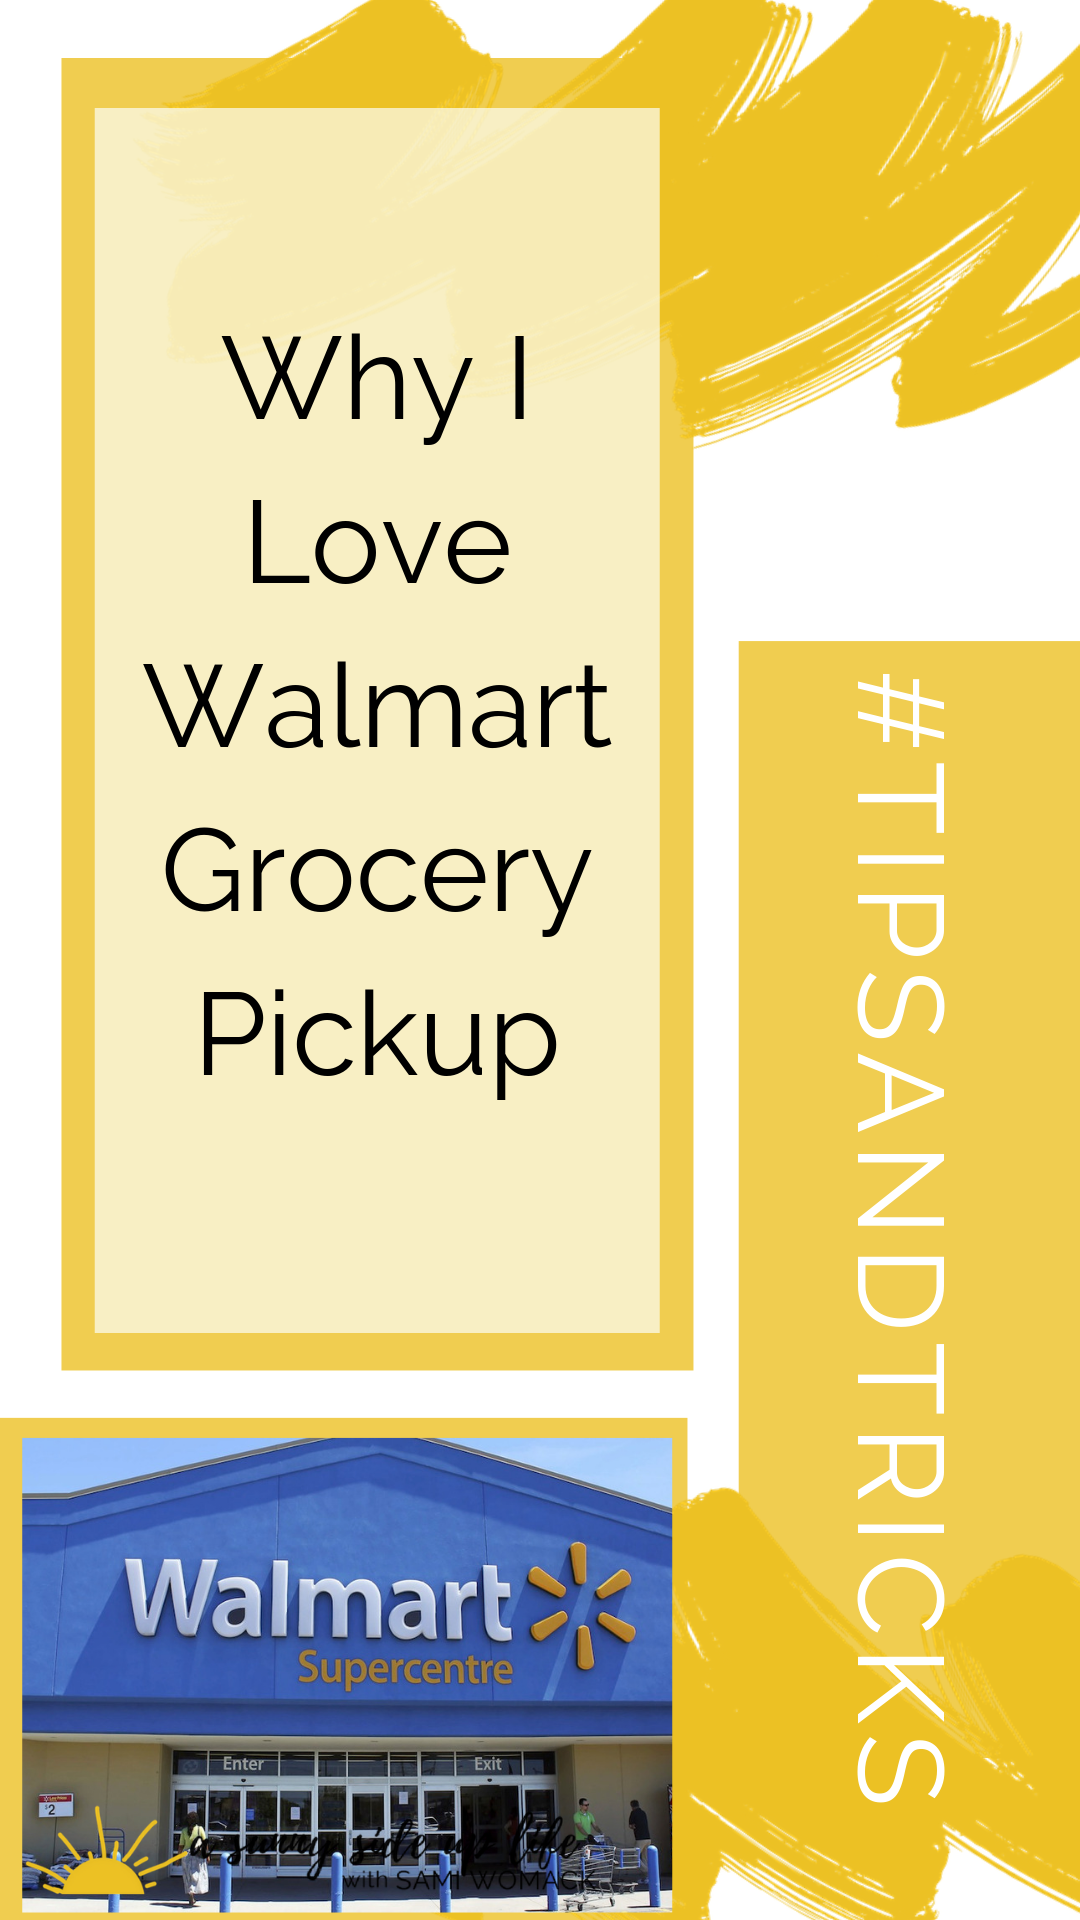 all about walmart grocery pickup | pros and cons | is pickup budget friendly | frugal grocery shopping | mom life hacks | budgeting | family on a budget | time savers for moms | why I love walmart grocery pickup | questions about grocery pick up | FAQ